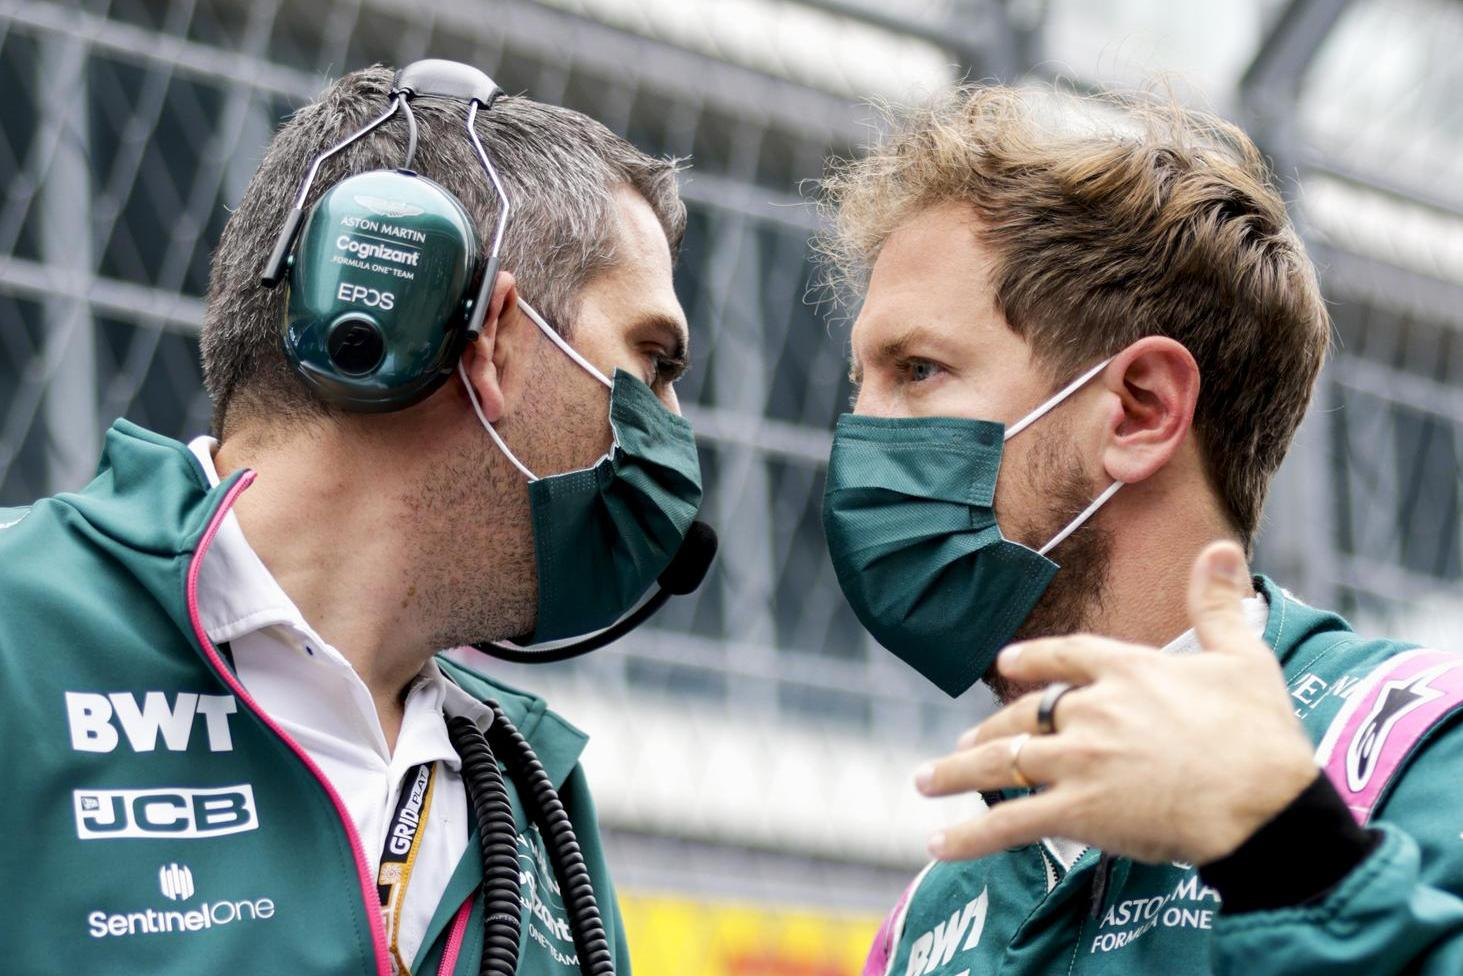 Vettel: Contact with Stroll likely 'a misunderstanding'